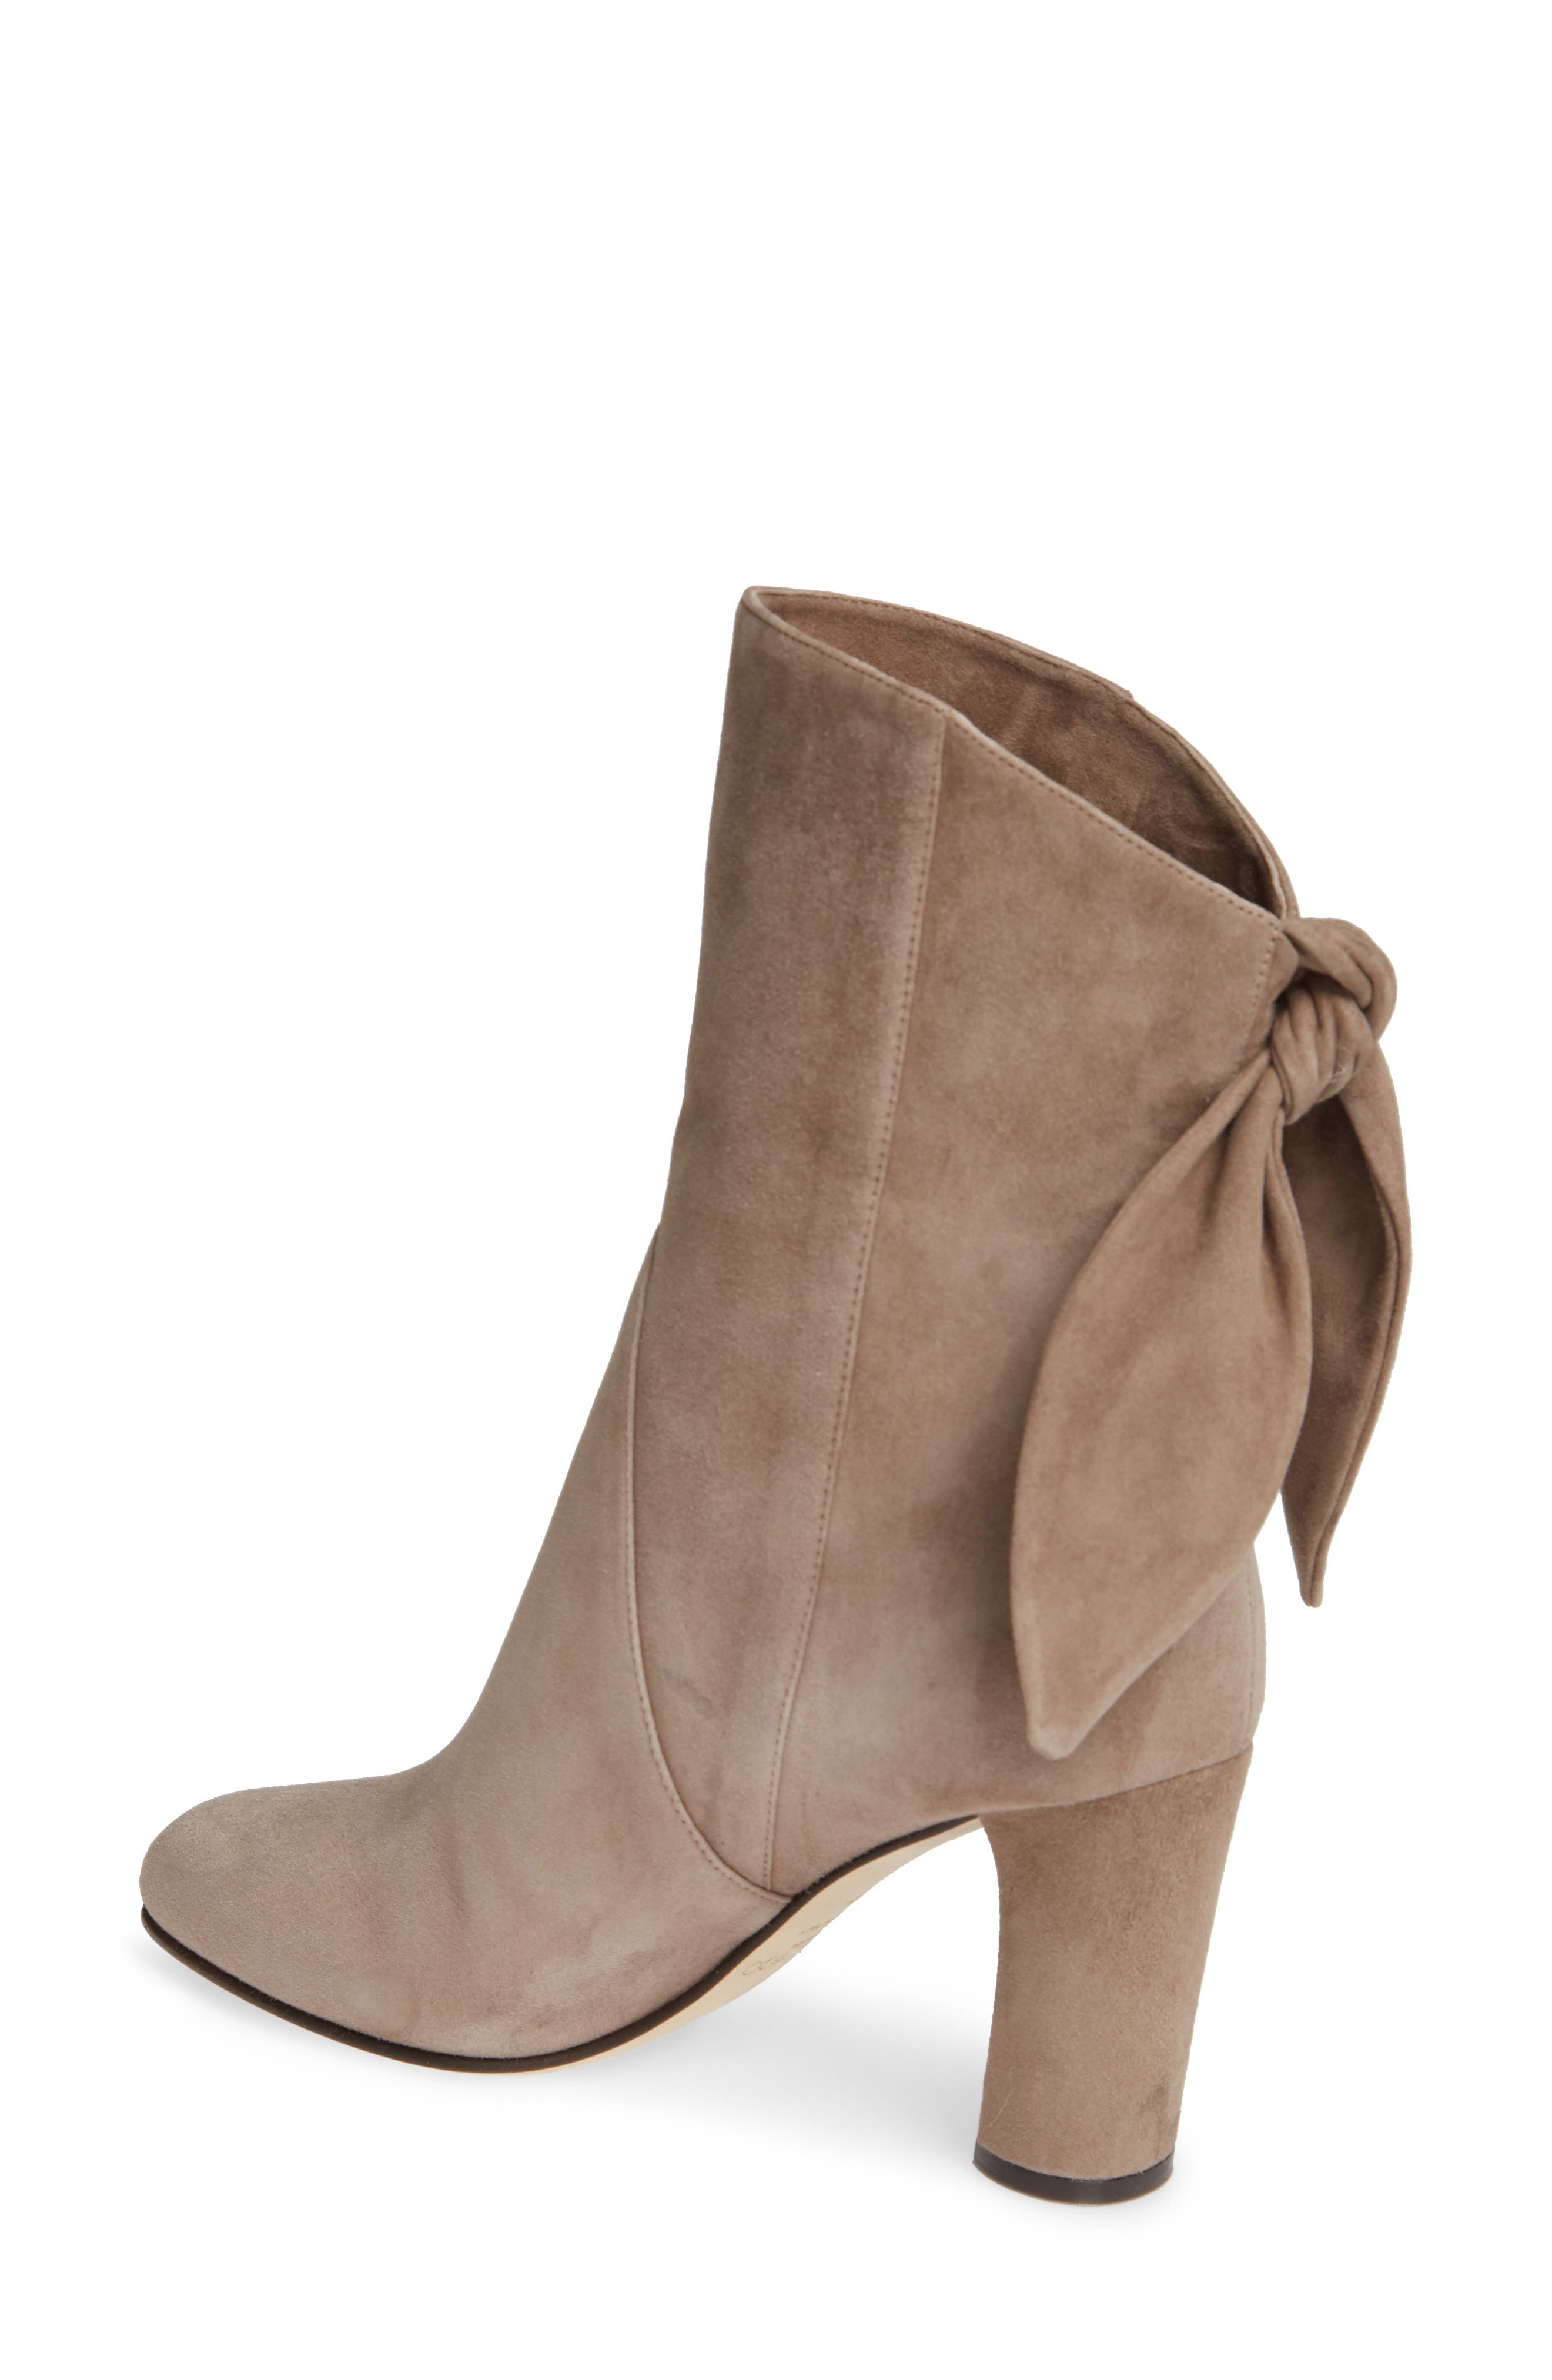 Malene Knotted Bootie,                             Alternate thumbnail 2, color,                             STONE SUEDE